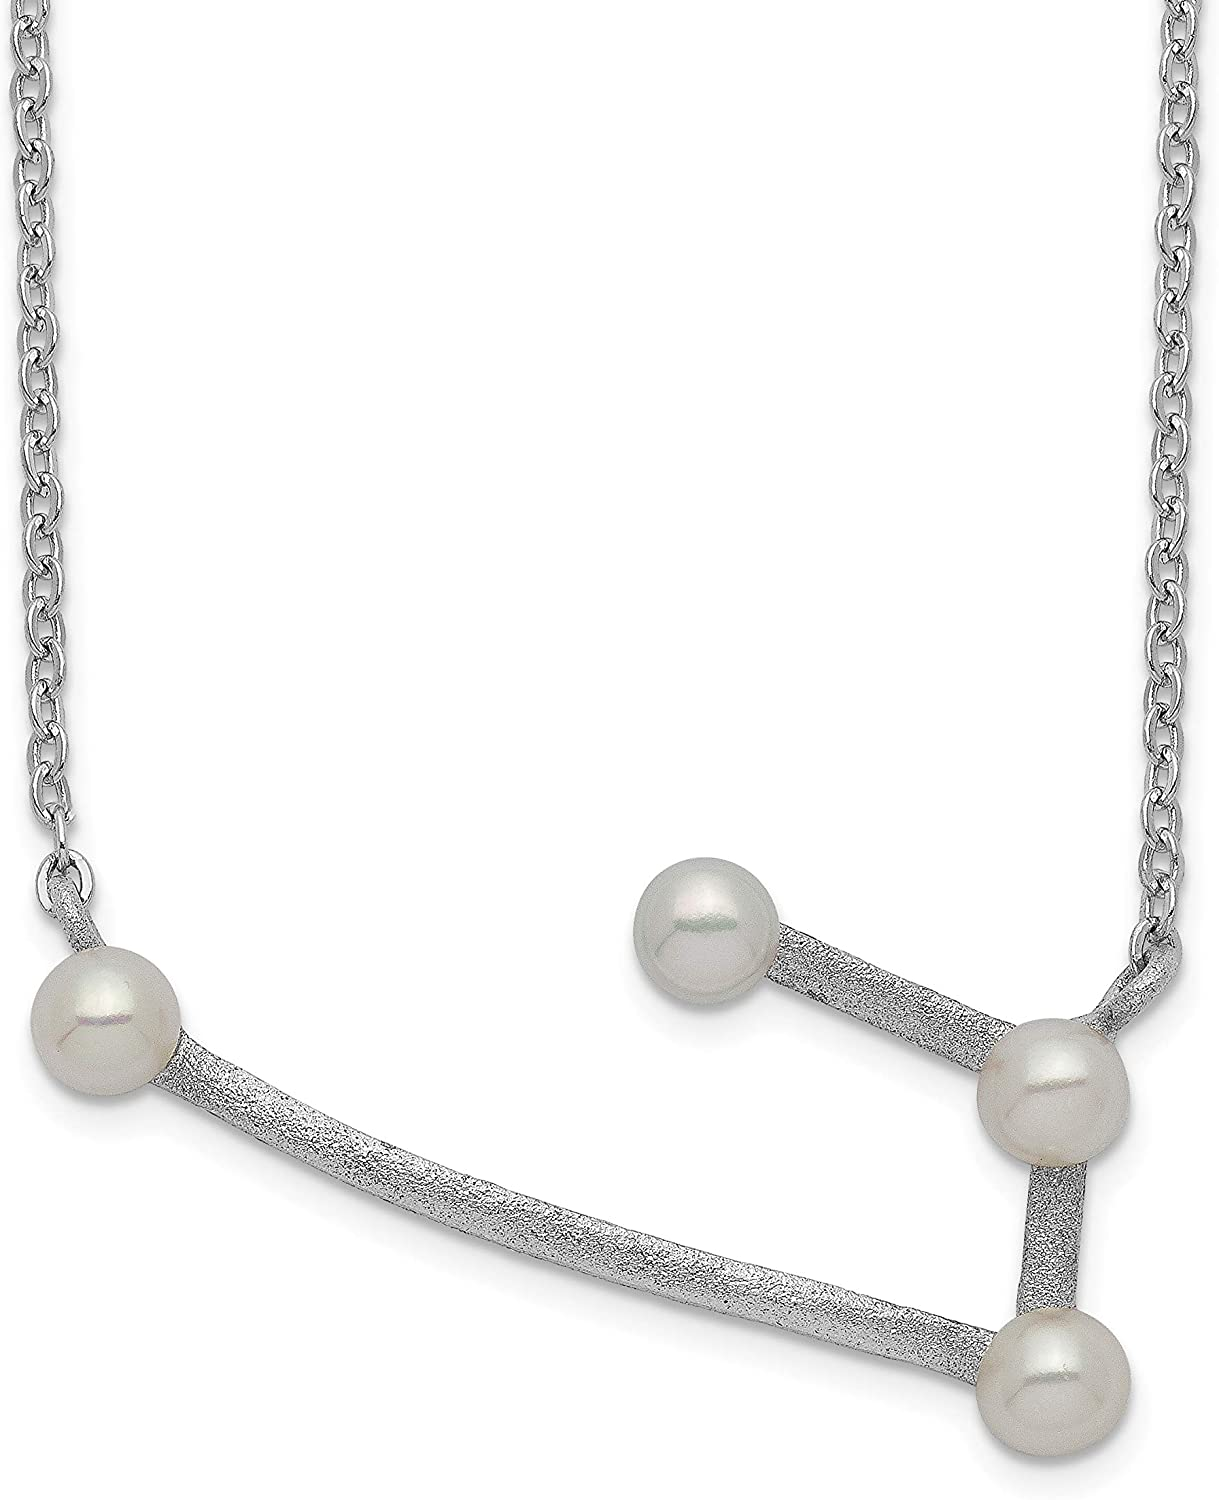 Necklace Sterling Silver Rhod-plat 4 3-4mm FWC Pearl Aries w// 1in ext